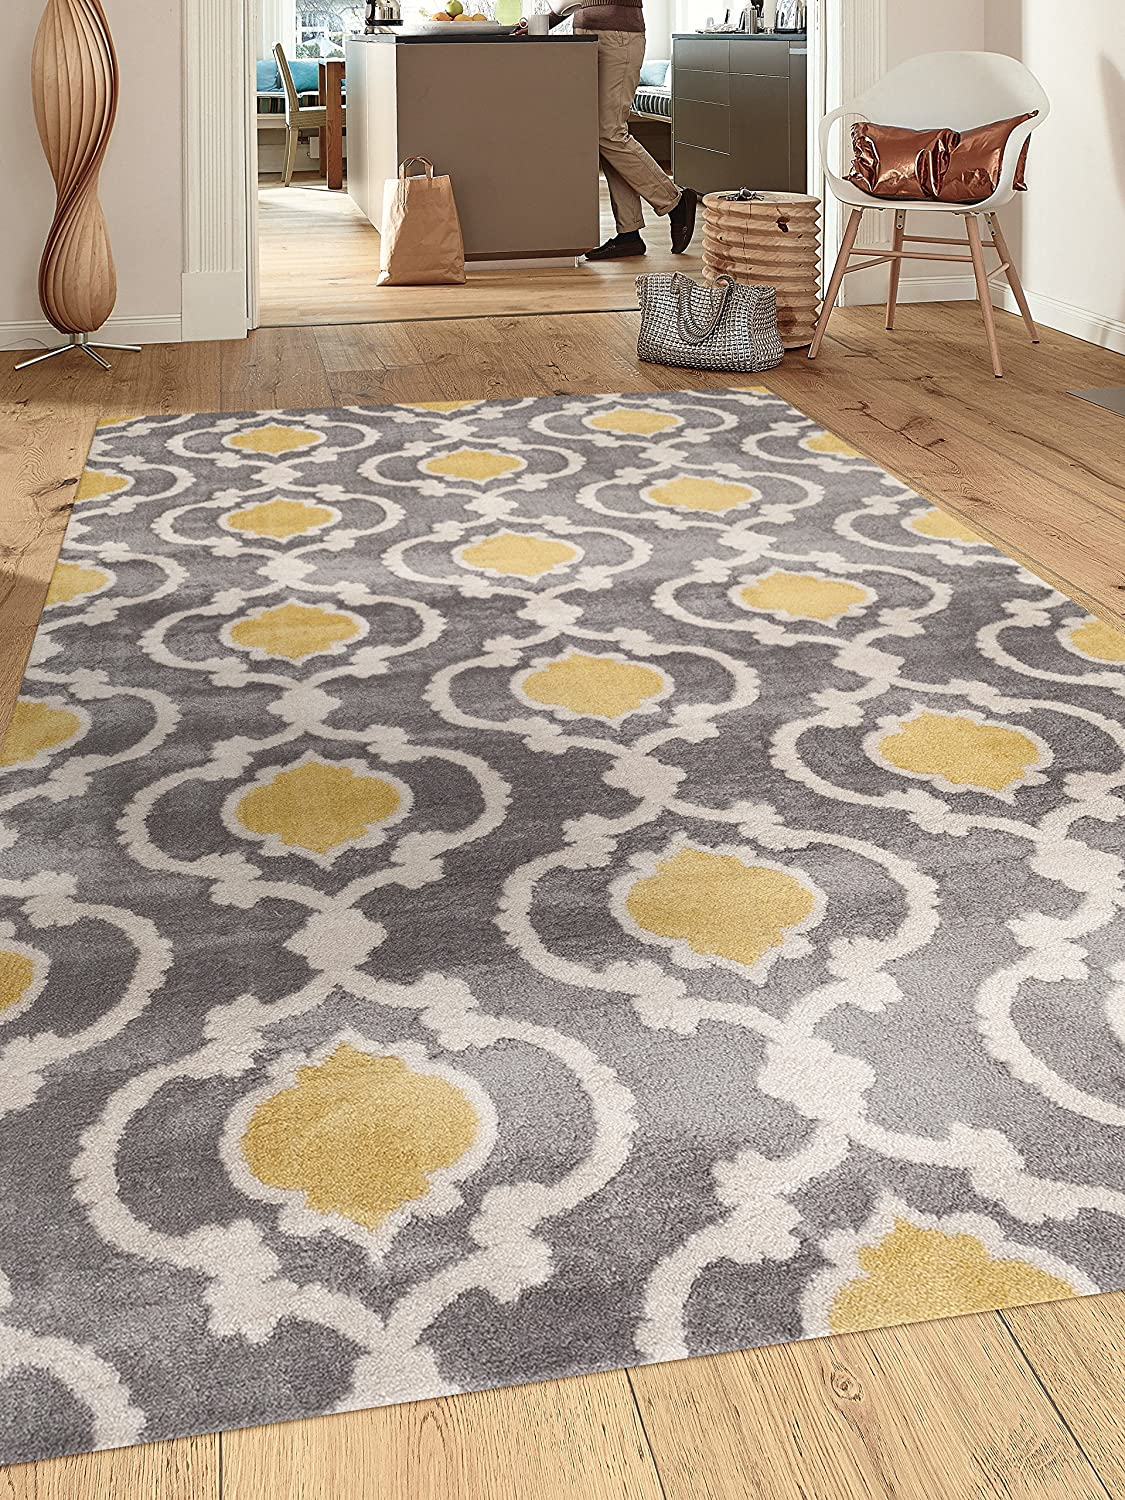 Gray And Yellow Rug Moroccan Trellis Contemporary Modern. Country Modern Kitchens. Modern Kitchen Light Fixtures. Country Kitchen Tacoma. Kitchen Pantry Storage Cabinets. Modern Kitchen Island With Seating. Modern Round Kitchen Table. Kitchen Cabinet Organizers Lowes. Country Kitchen Plans